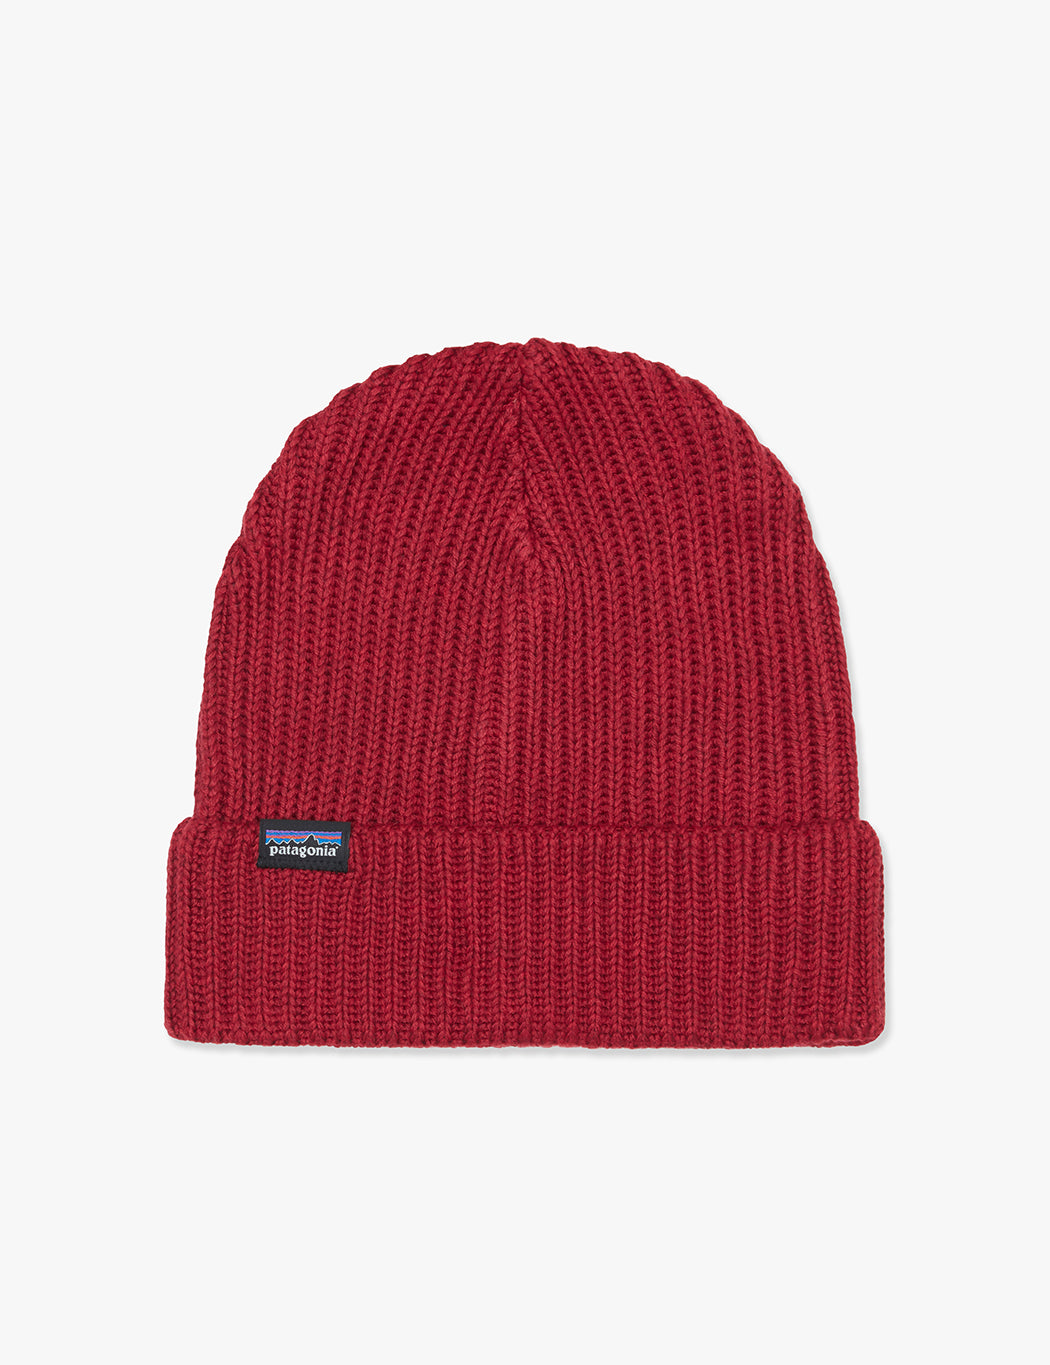 Patagonia Fisherman s Rolled Beanie Hat - Oxide Red  97f70f9616a